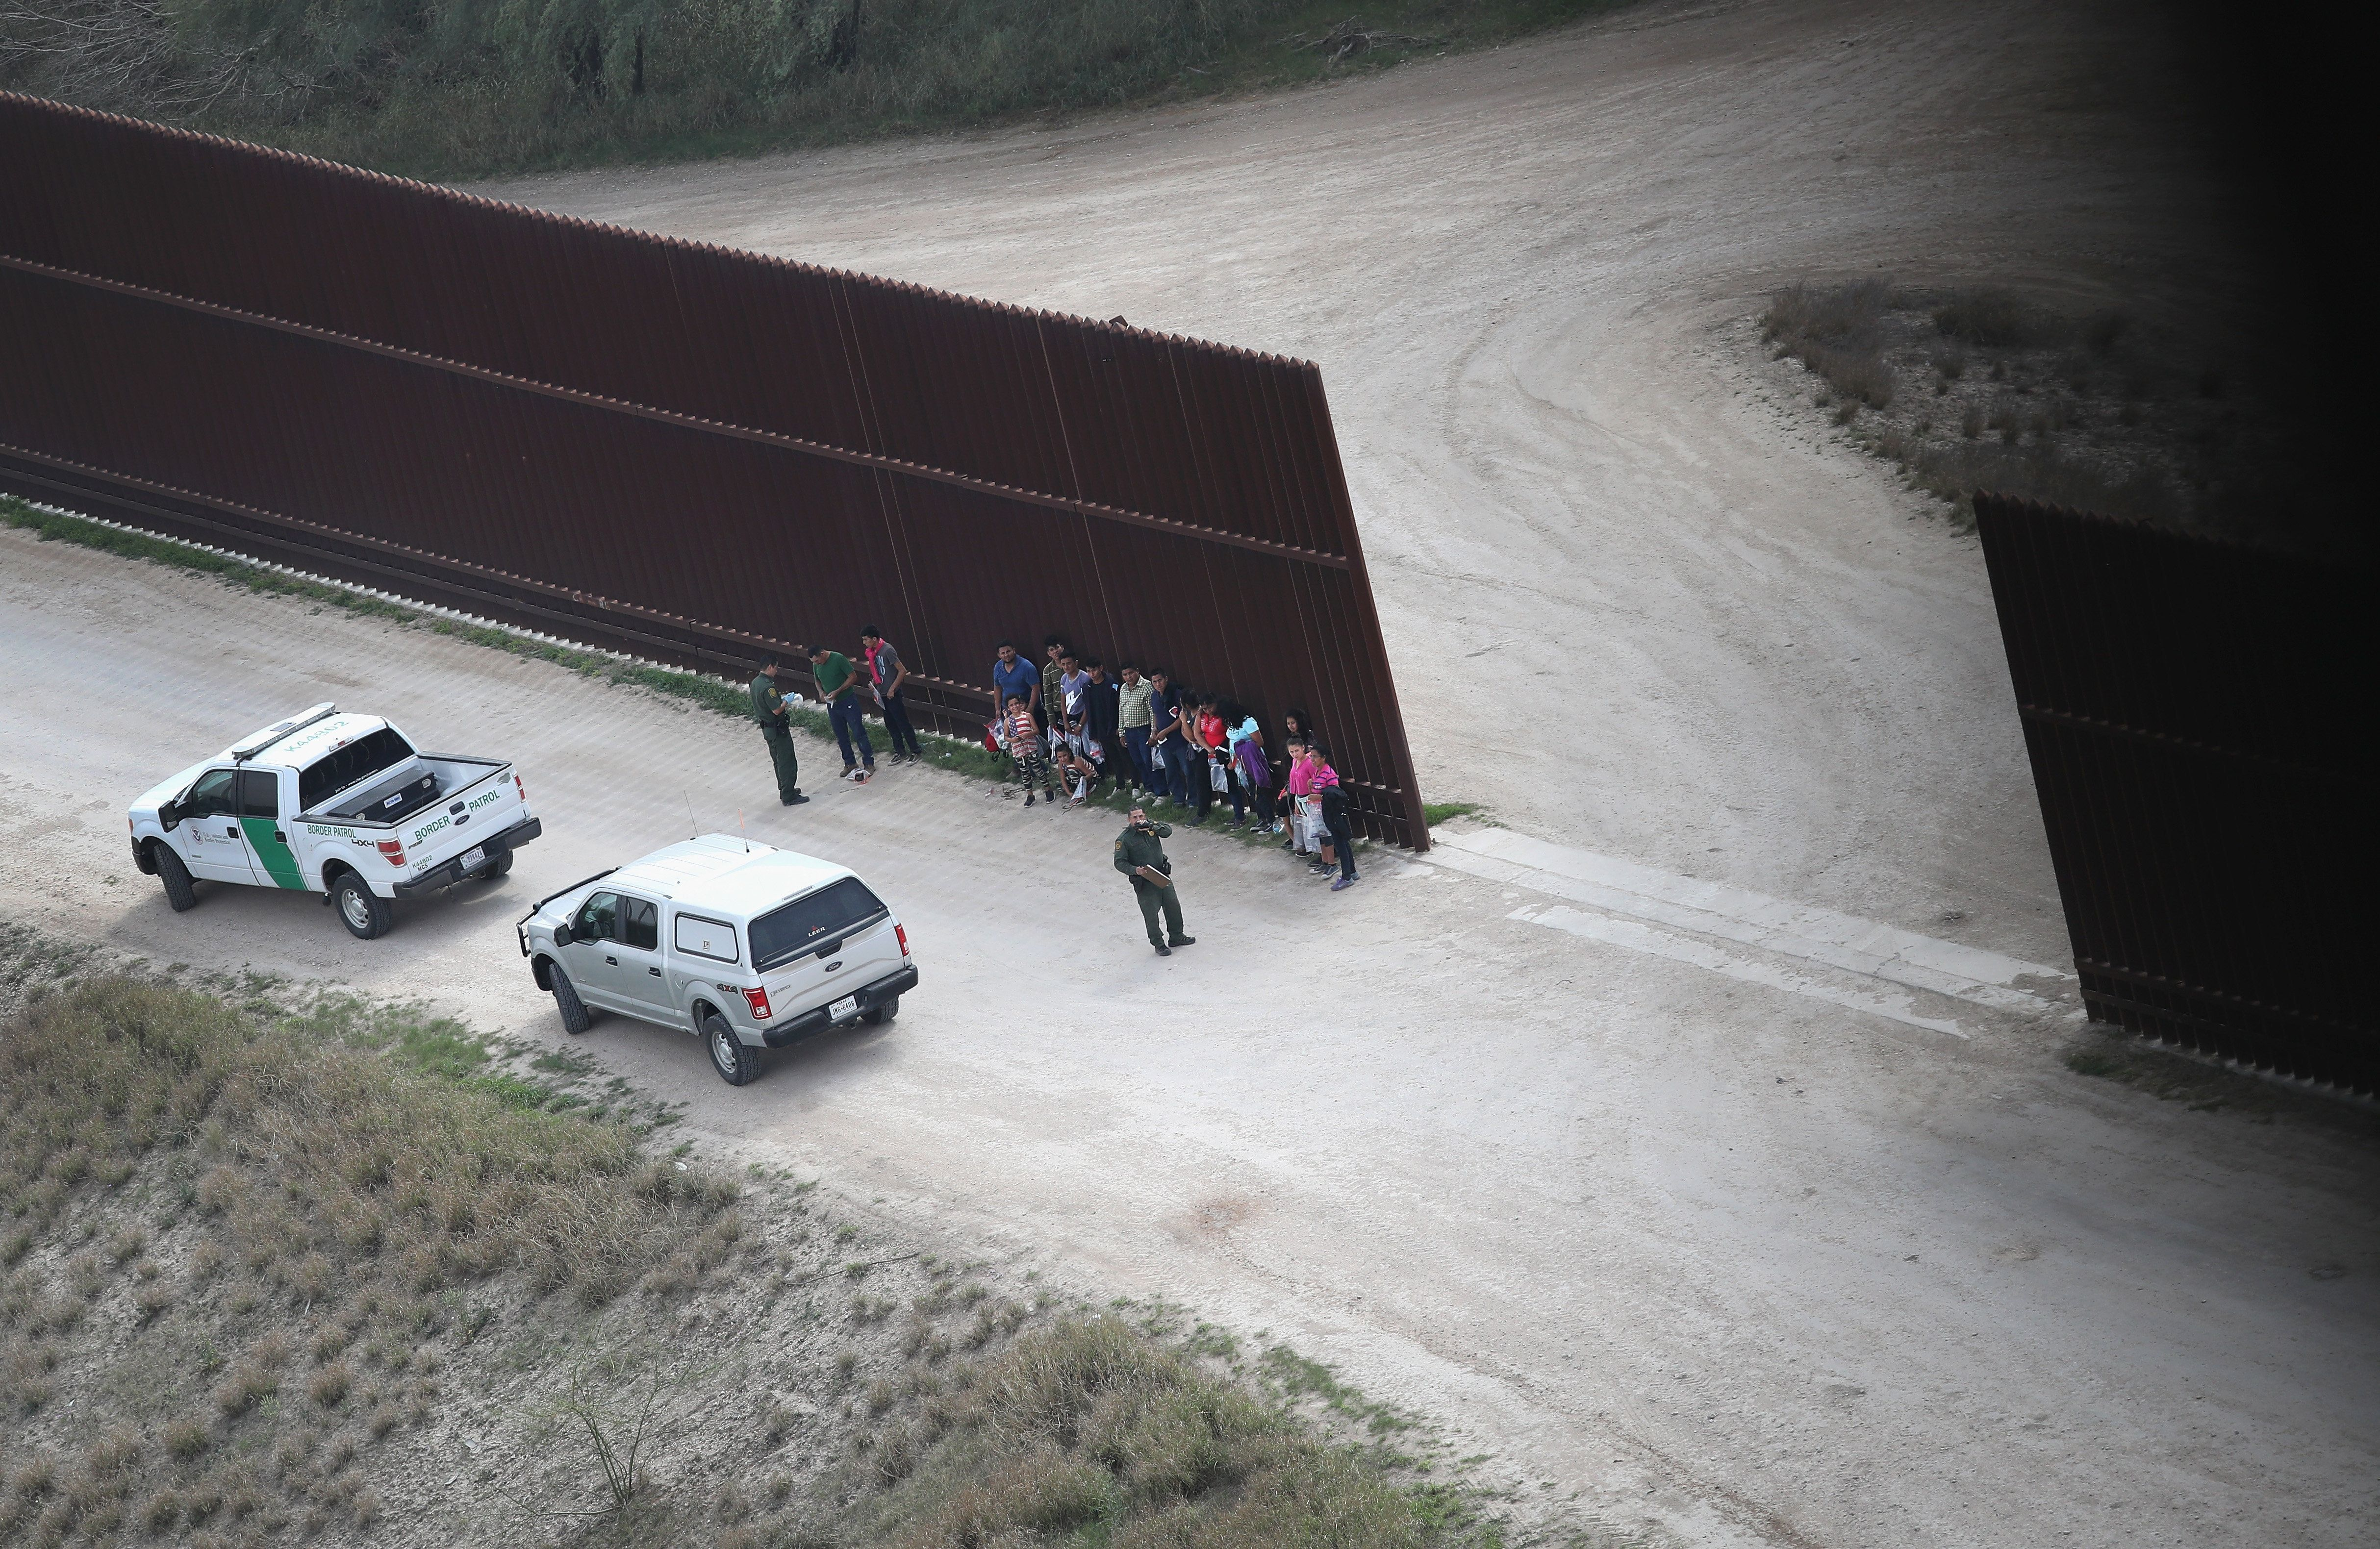 U.S. Border Patrol agents stand with undocumented immigrant families at the U.S.-Mexico border fence before transporting them